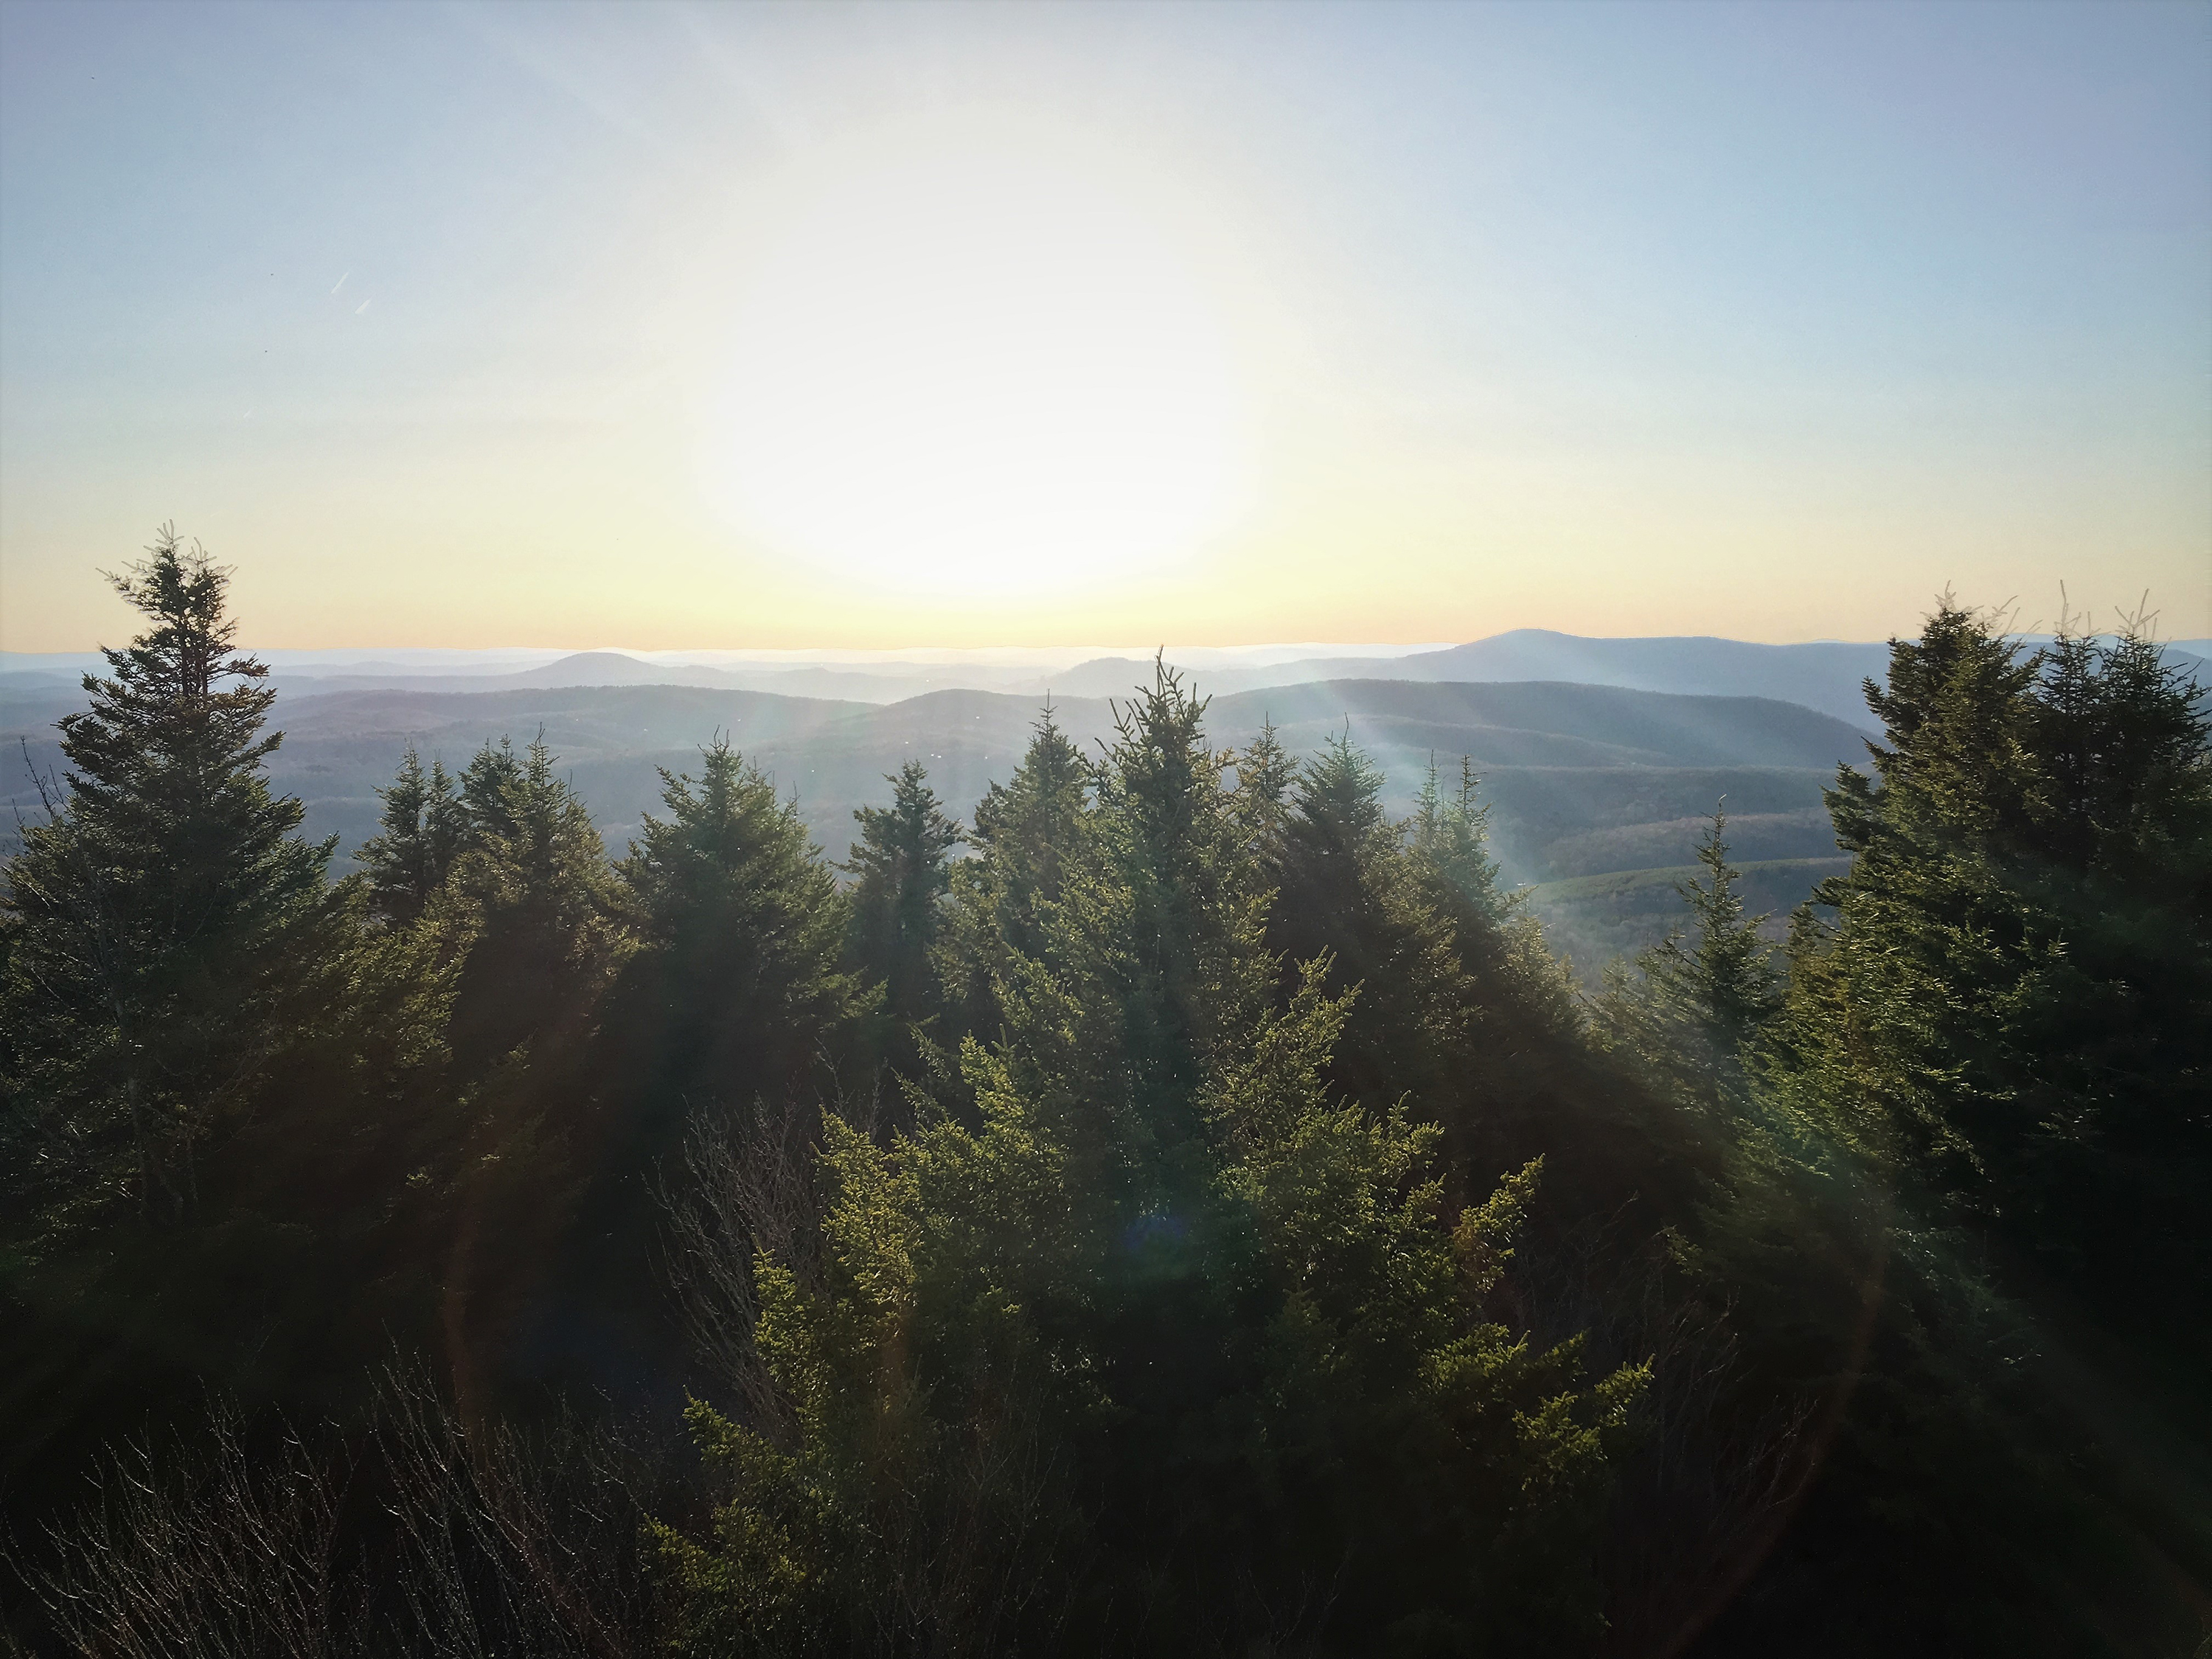 The view from Spruce Knob